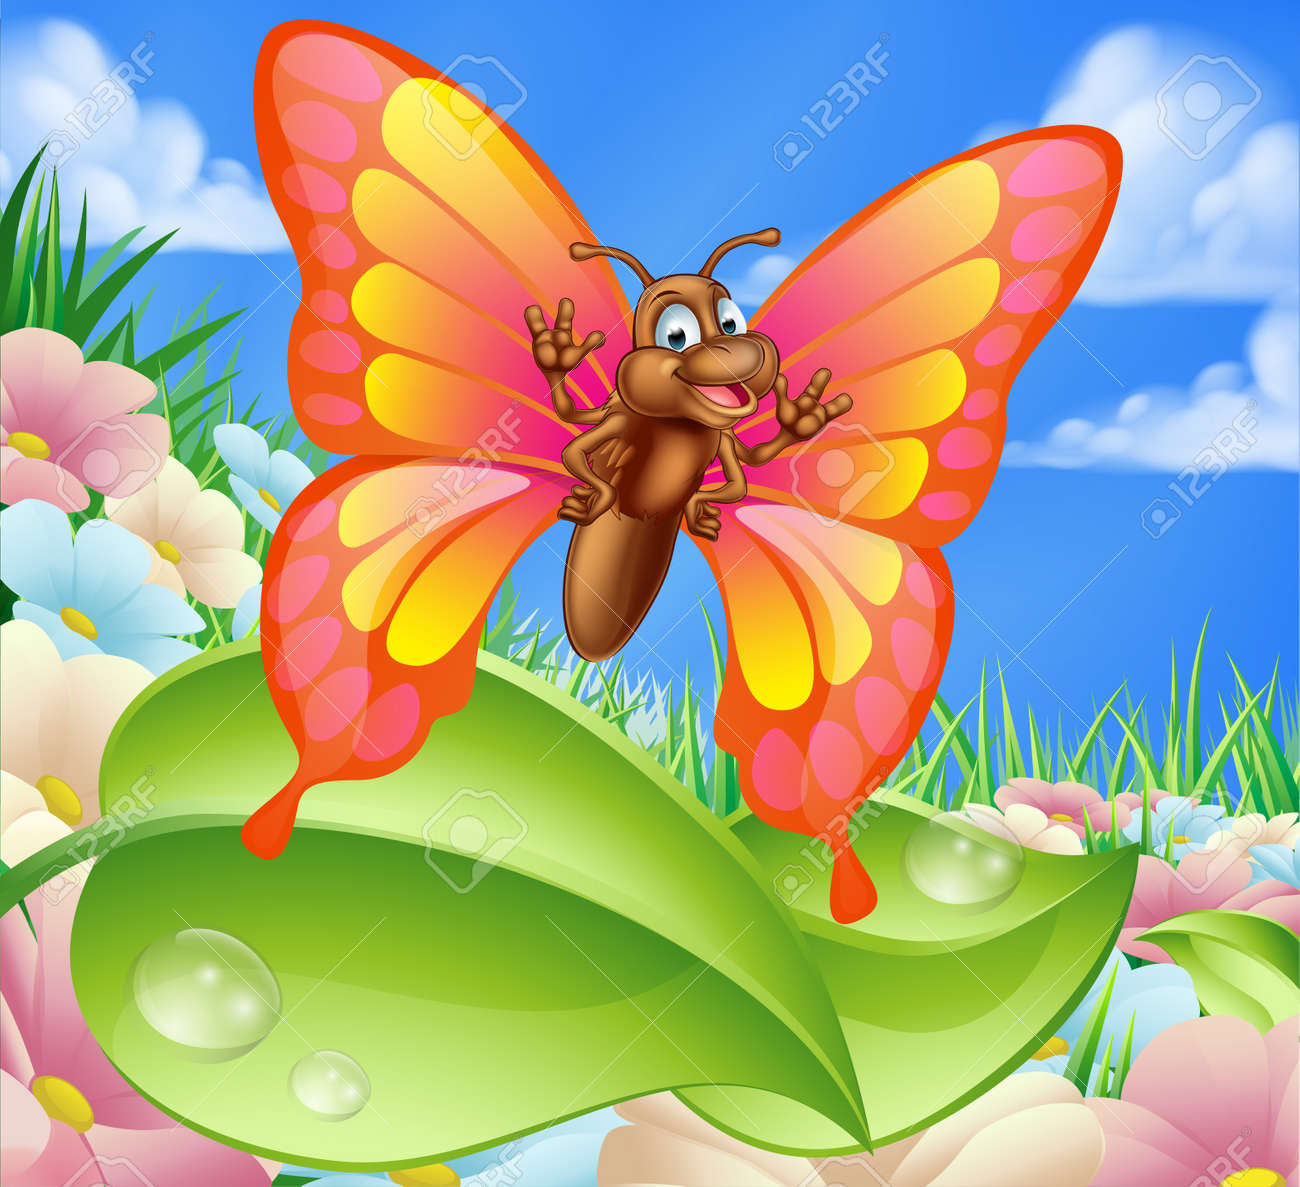 an illustration of a cute cartoon butterfly character in a summer